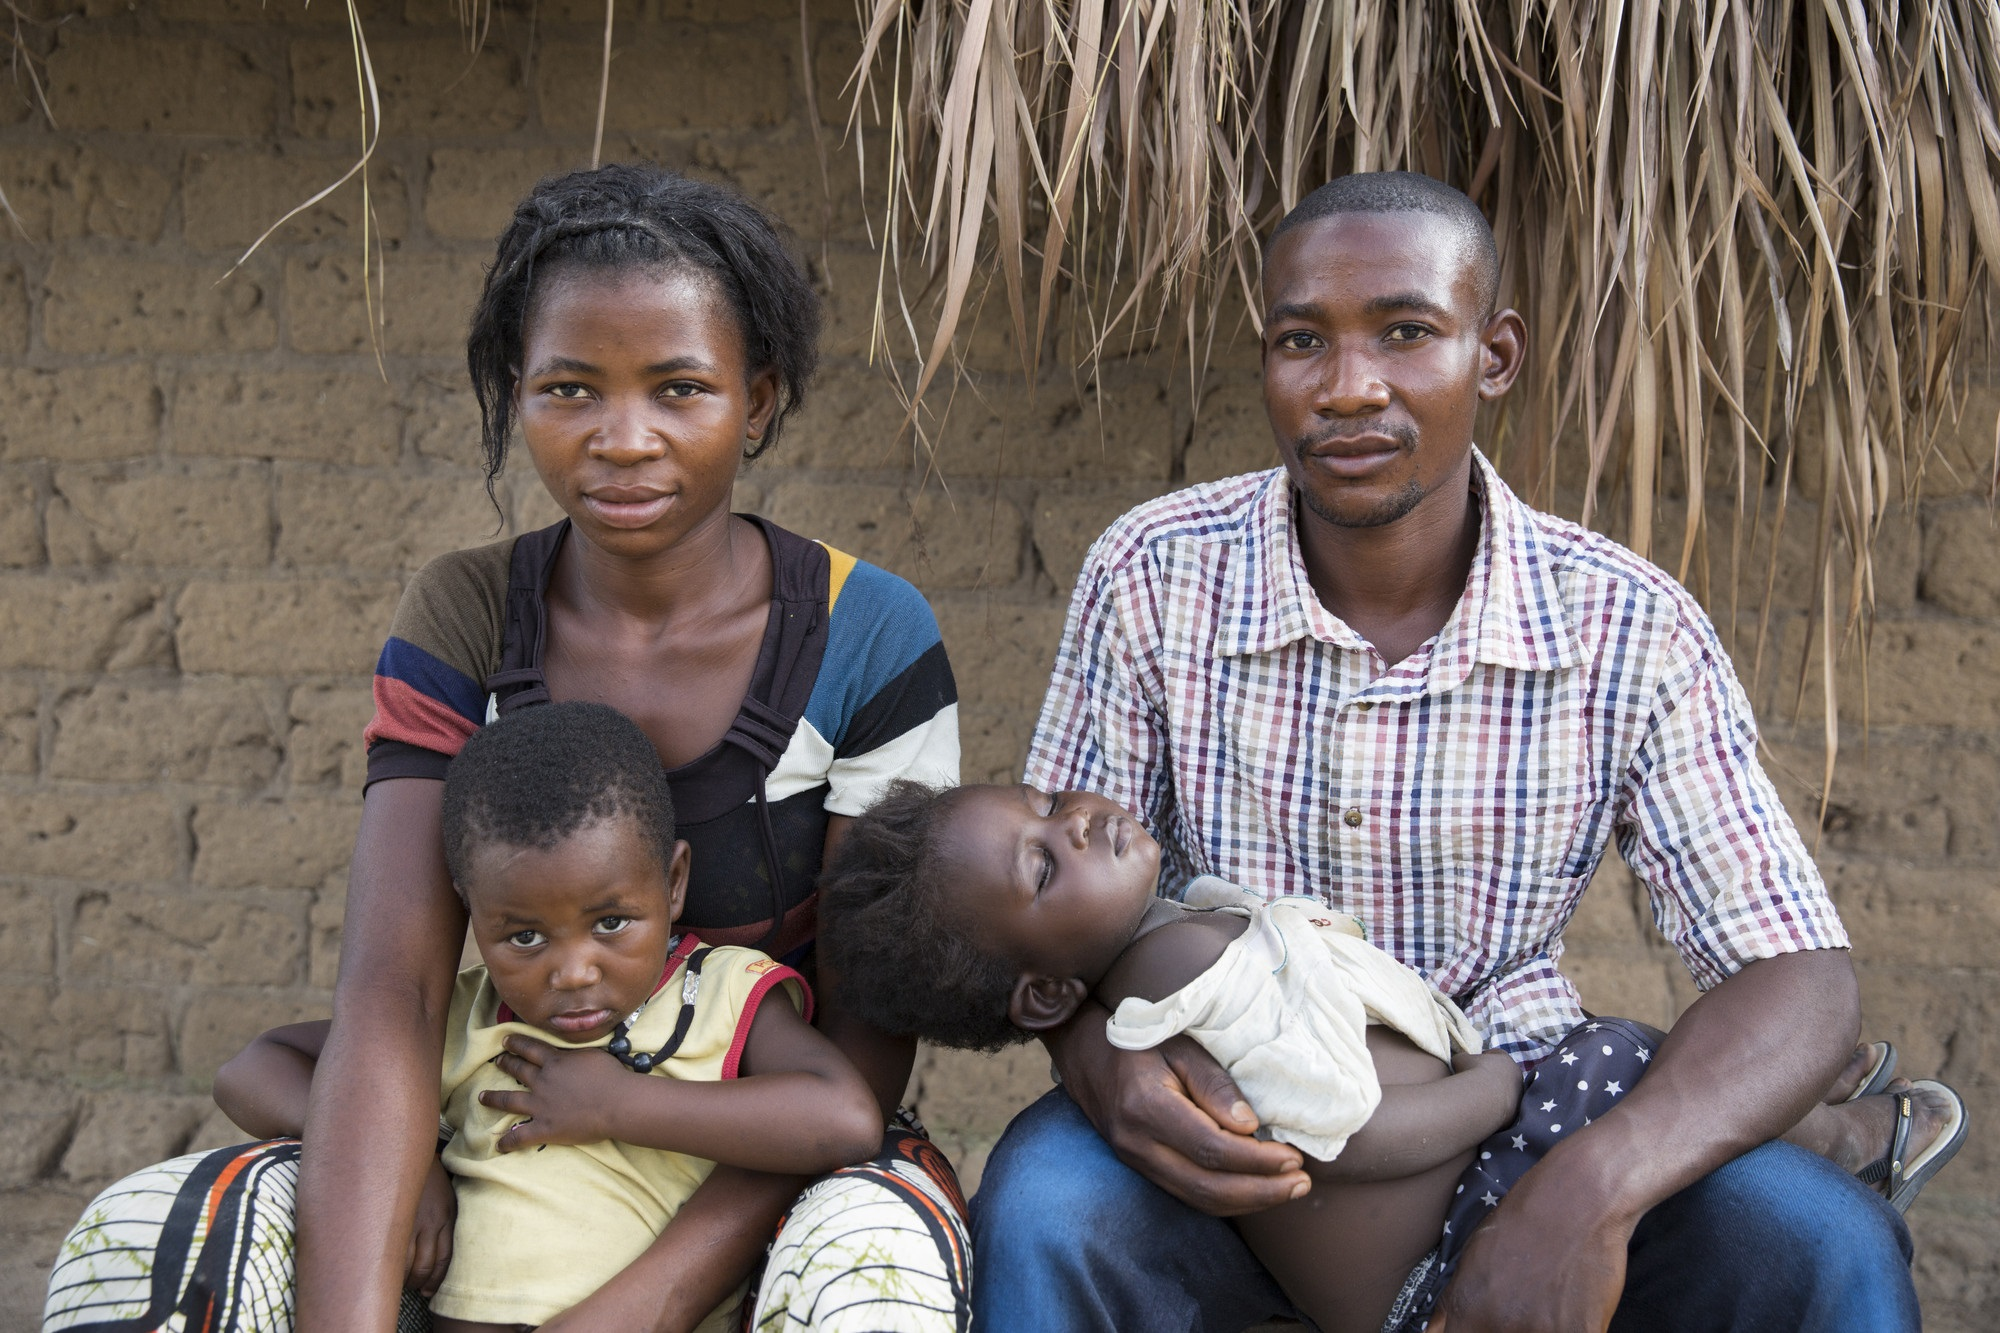 The home of Mbuya Reagan, 27 (a casserite miner) and his wife, Banze Therese, 25 and their three children in Manono, DRC. They are benefitting from Concern's graduation program. Photo: Kieran McConville/ Concern Worldwide